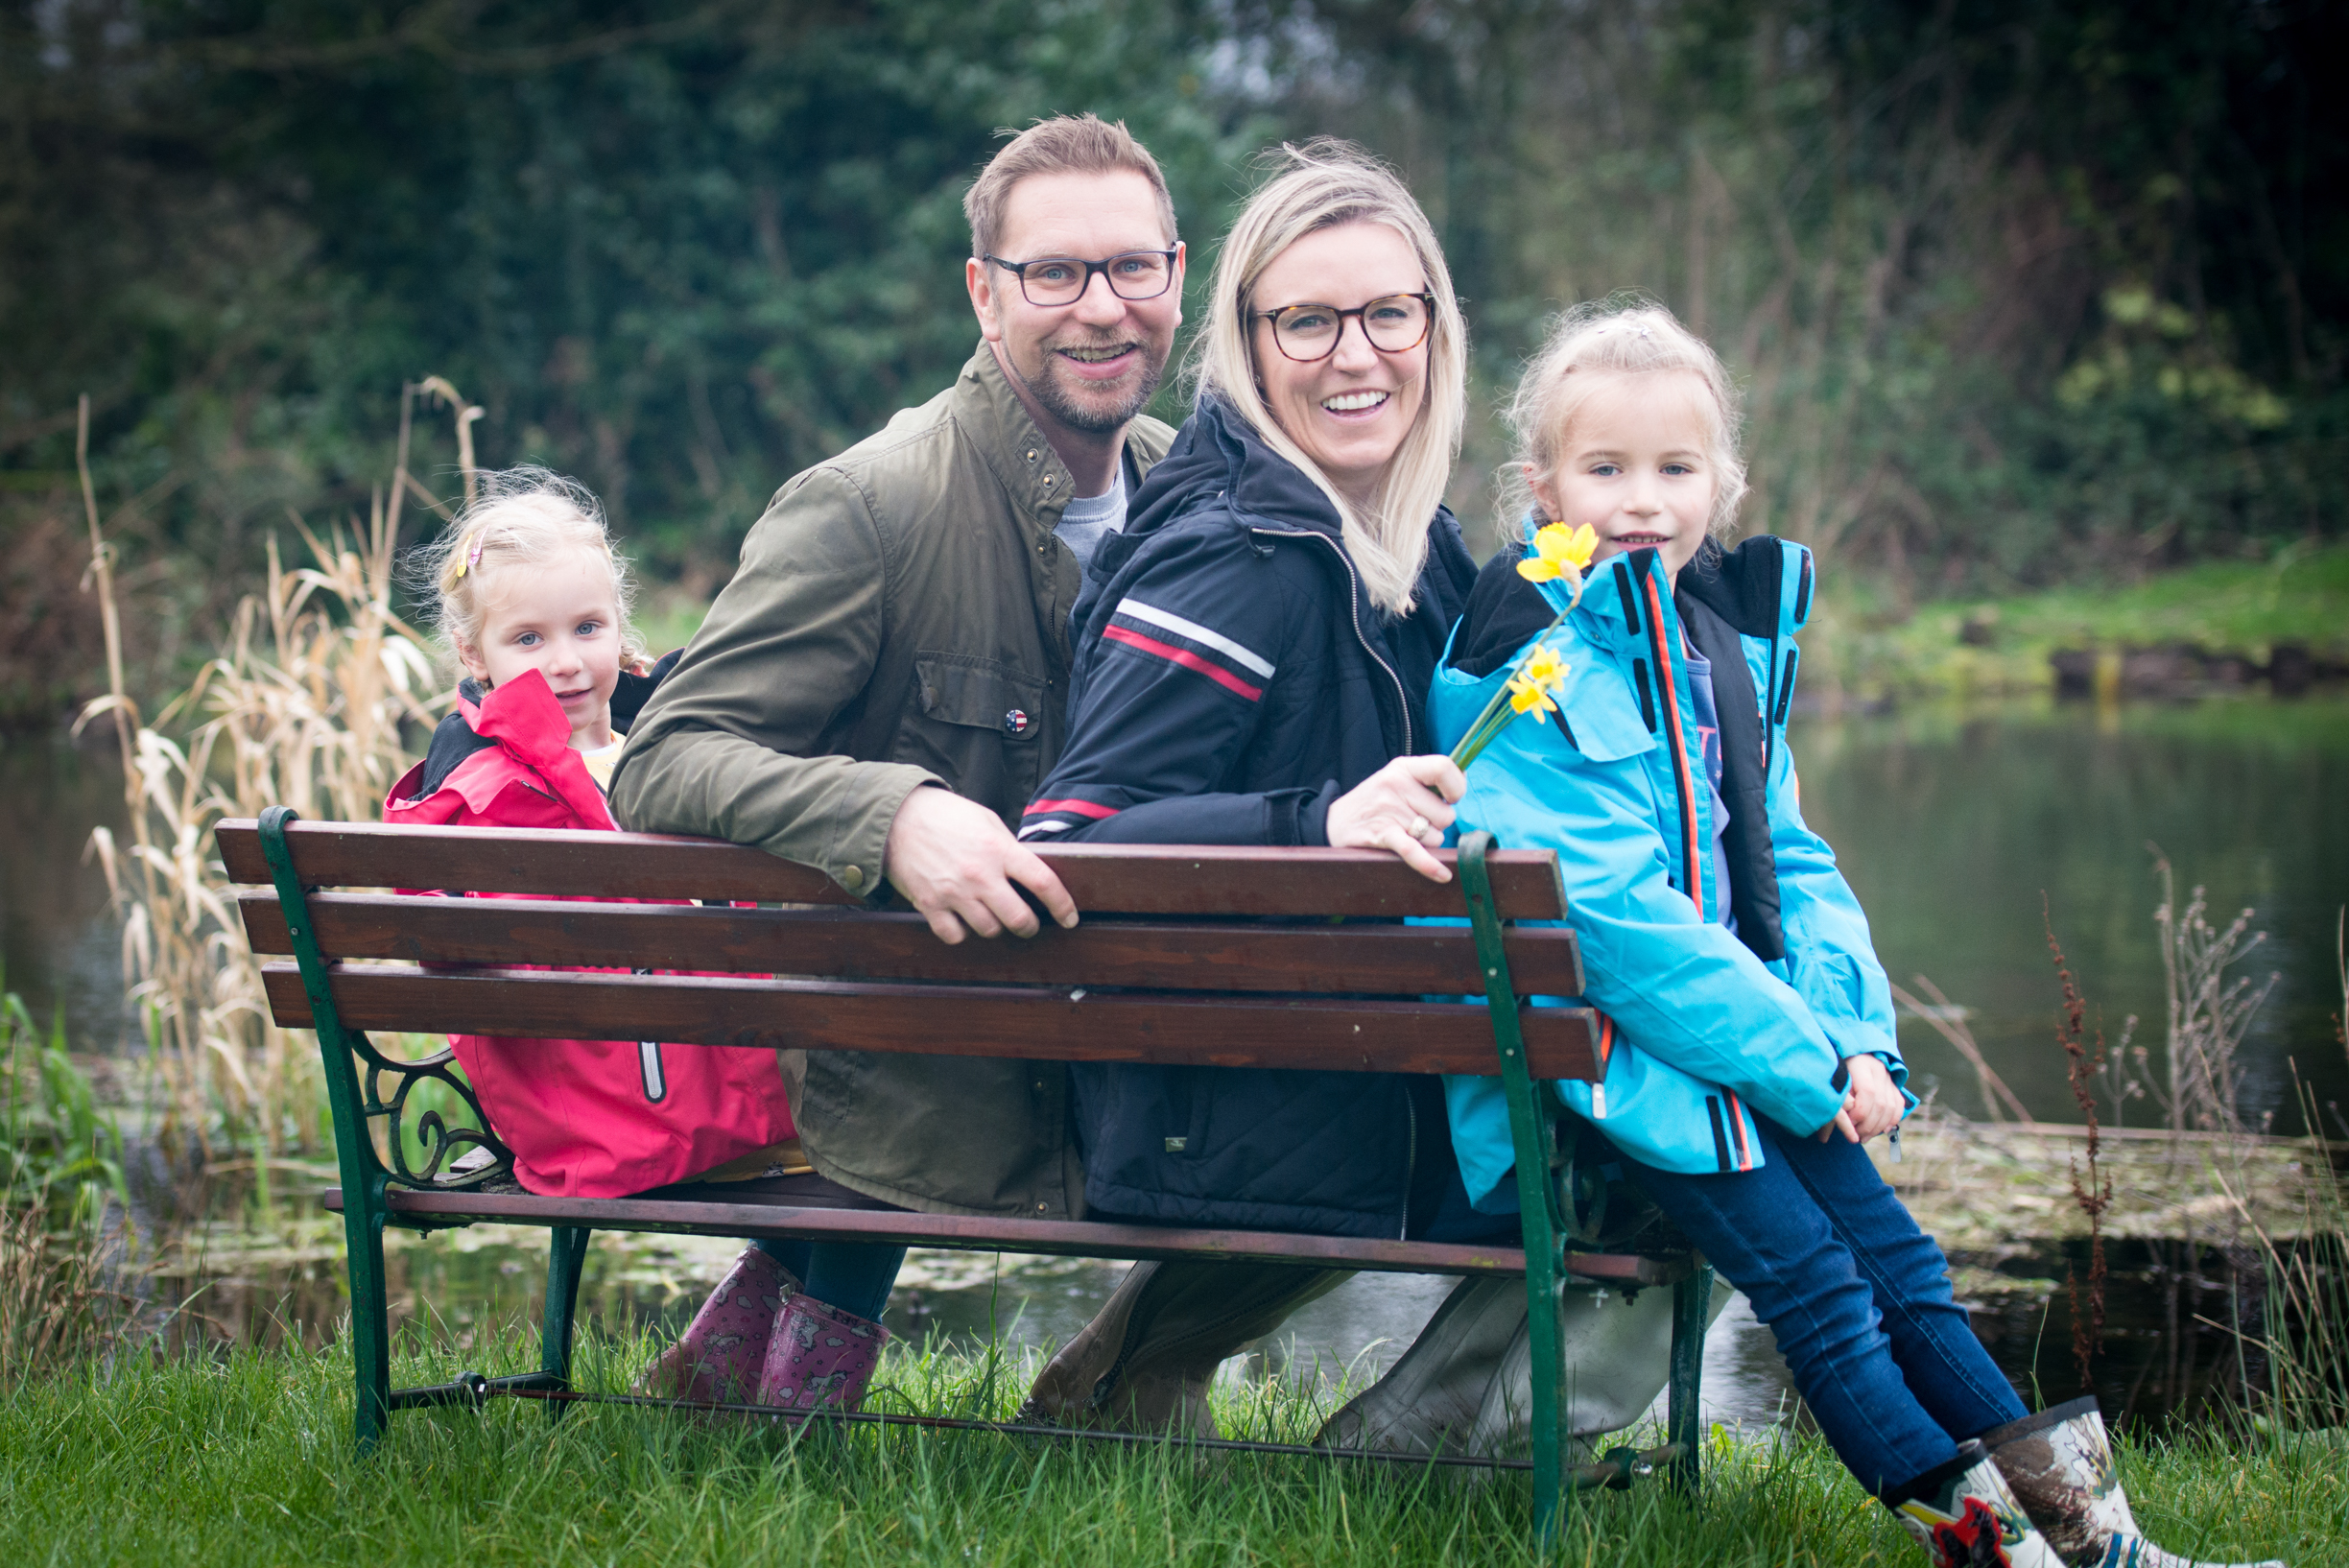 Family Photoshoot in Twyford